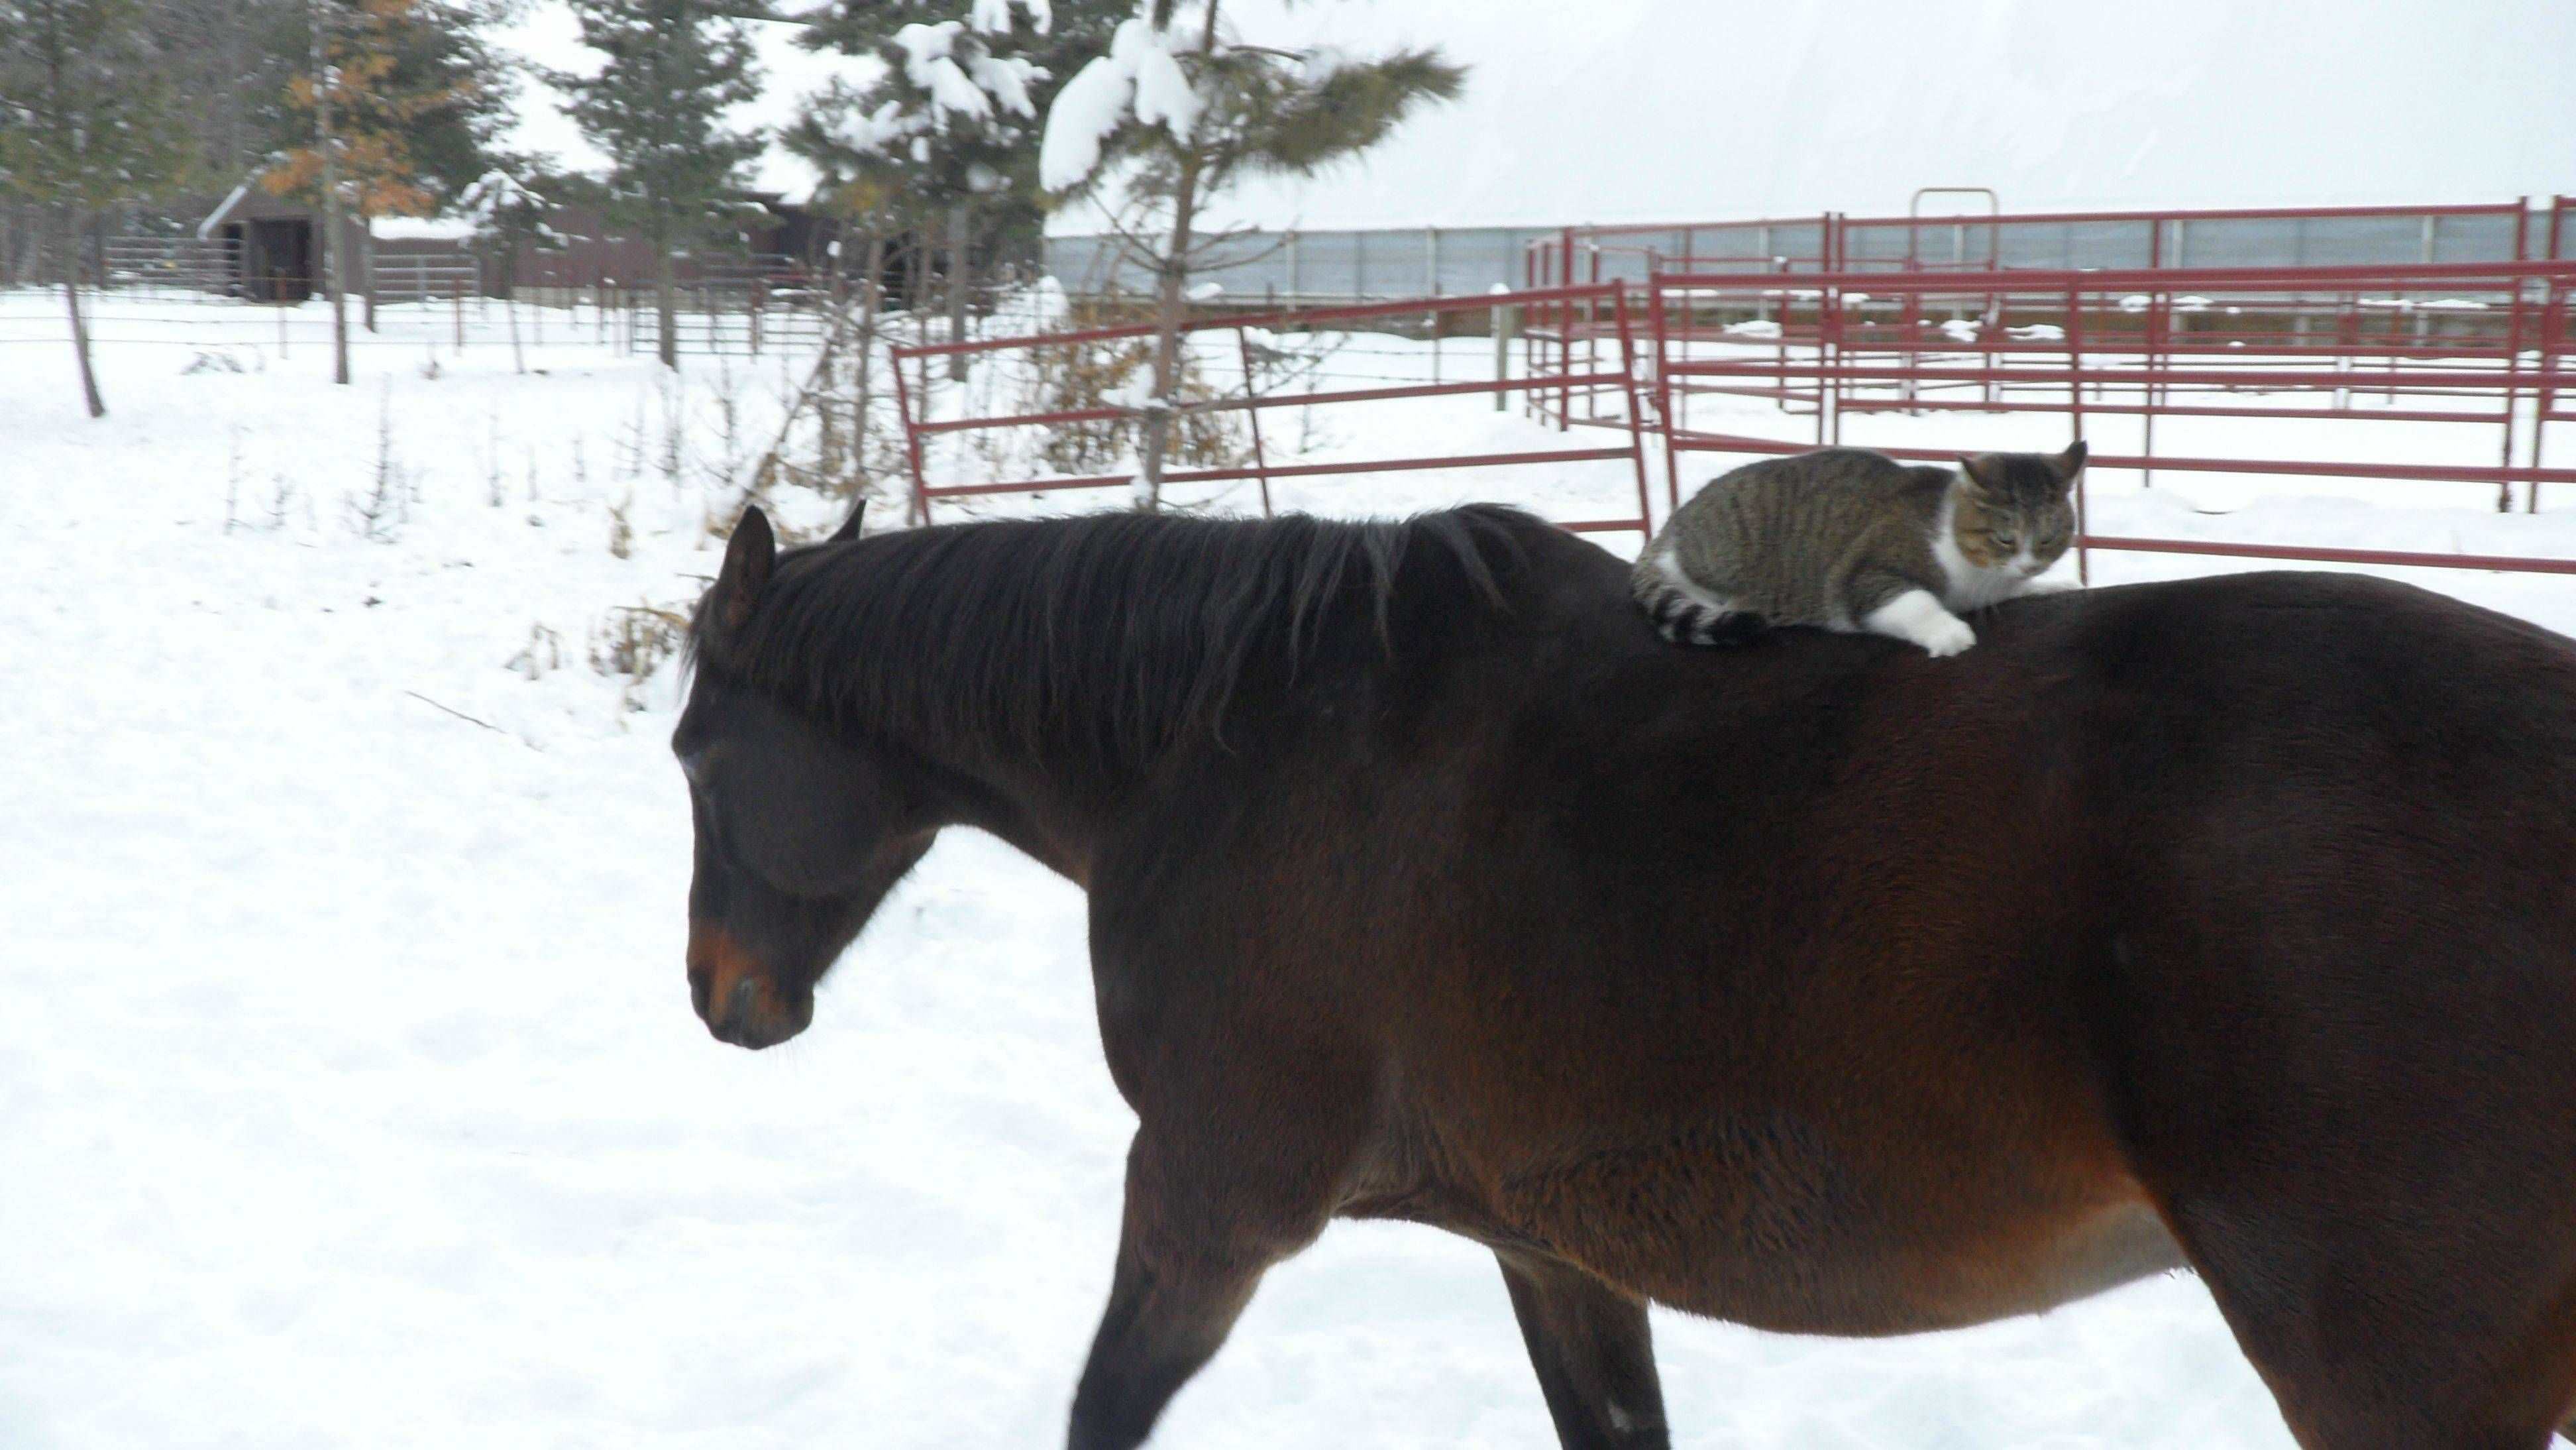 barn cat taking a ride on a horse Horses, Animals, Cats